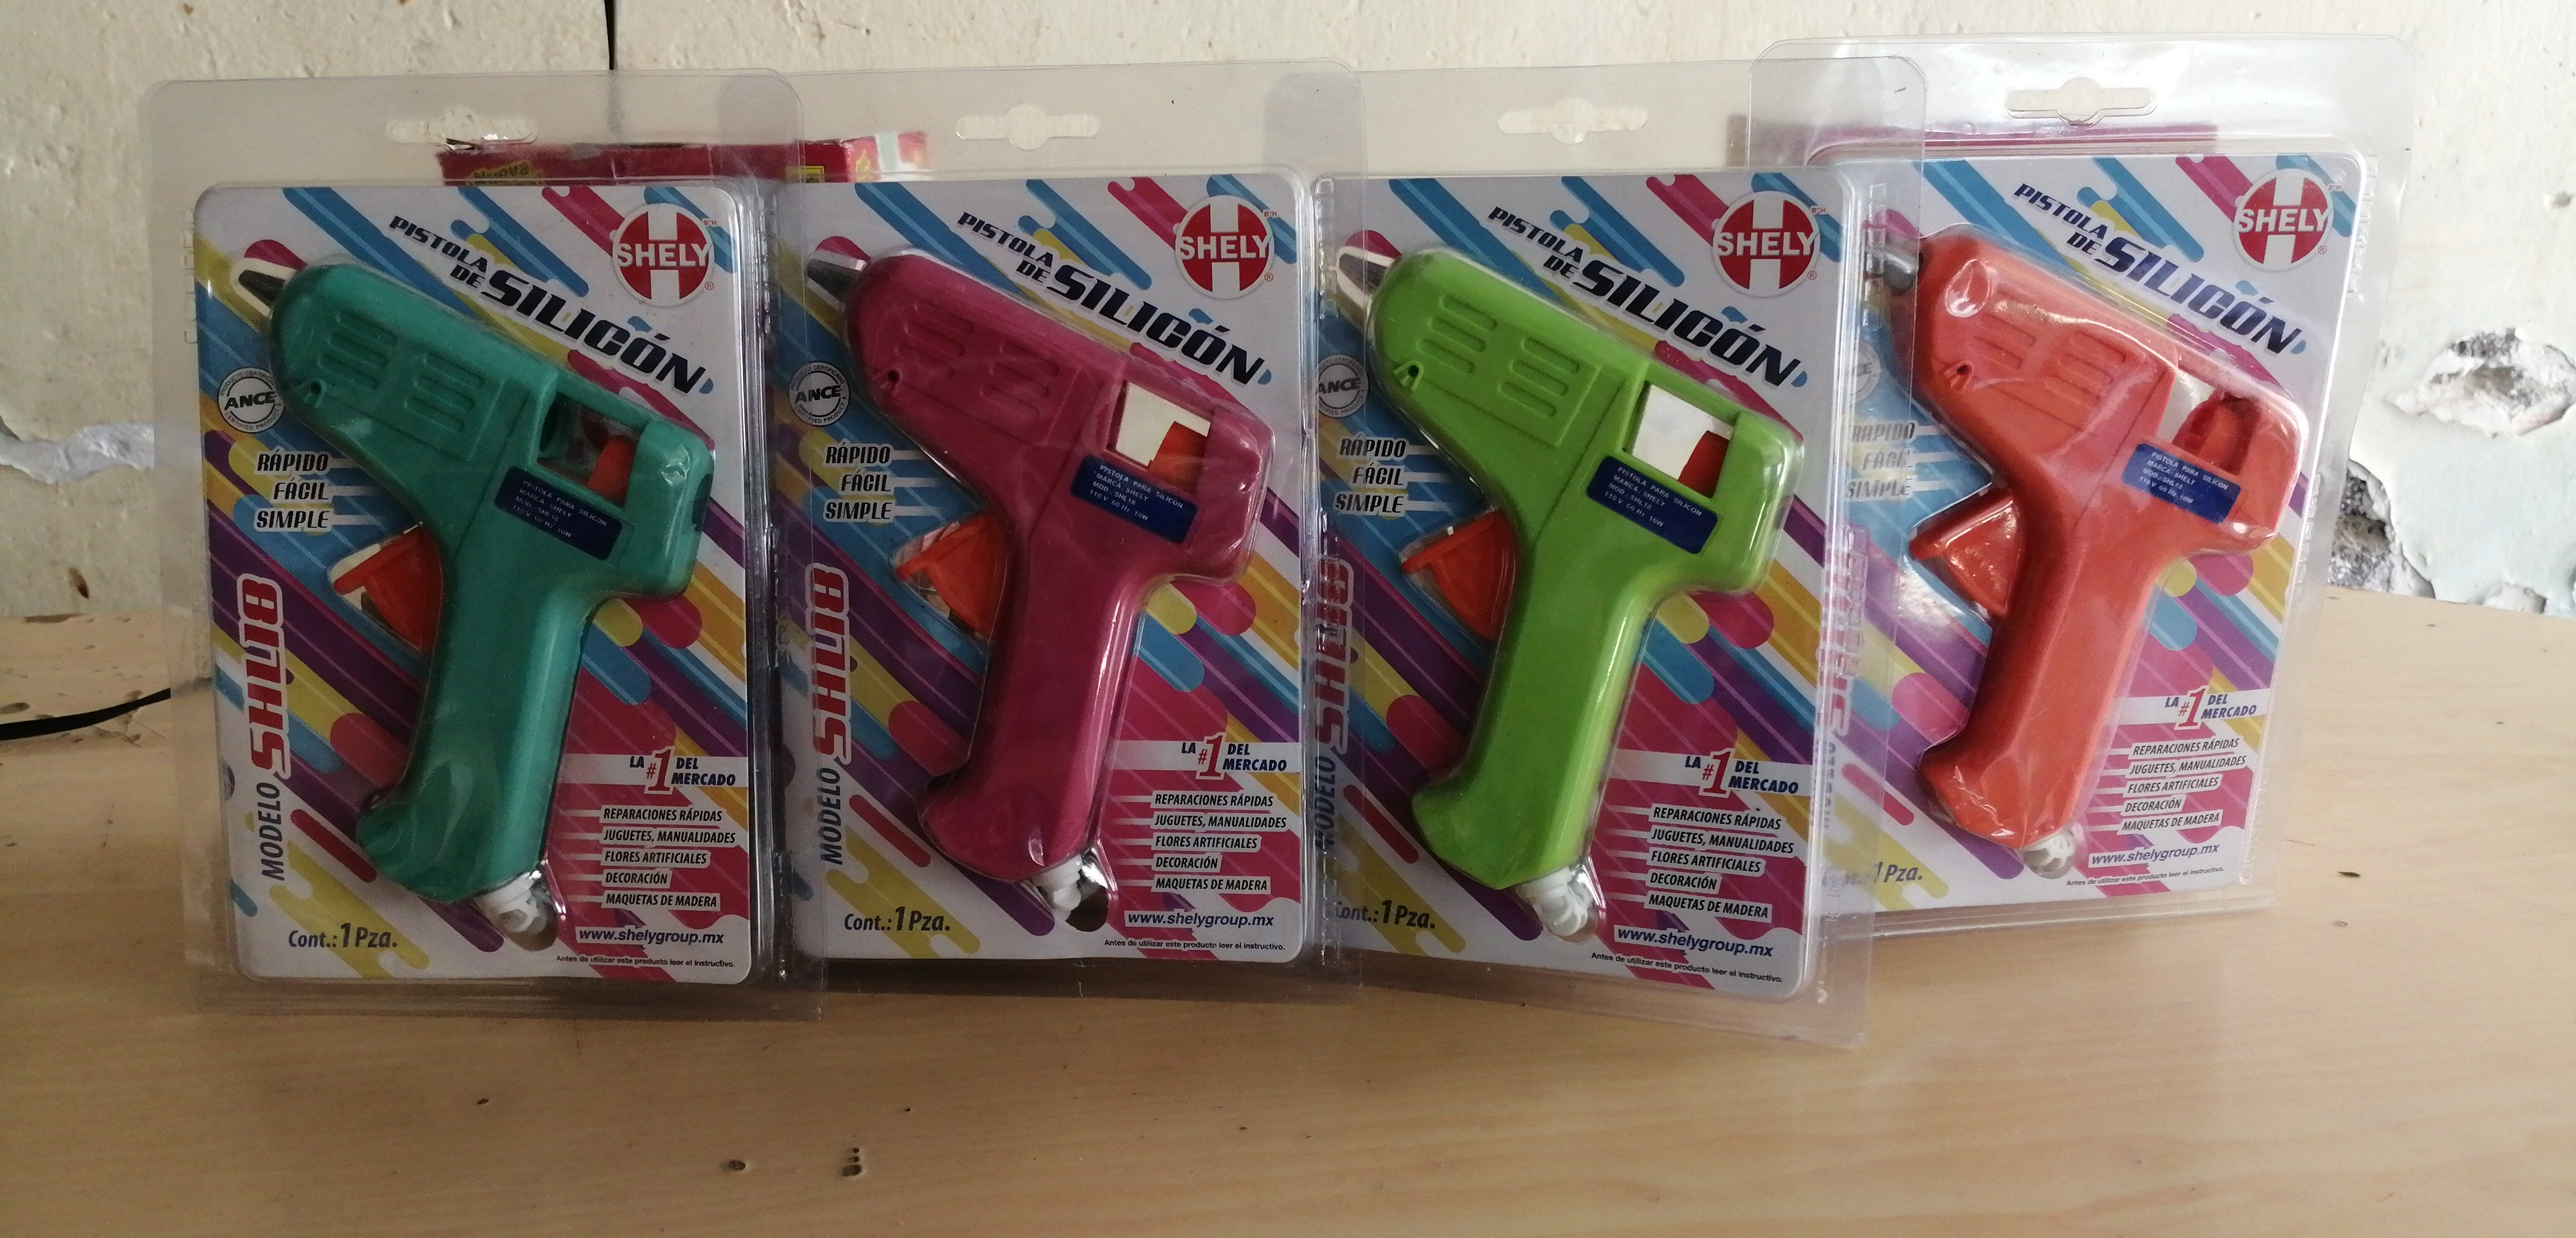 PISTOLA COLOR SILICON SHELY 40012